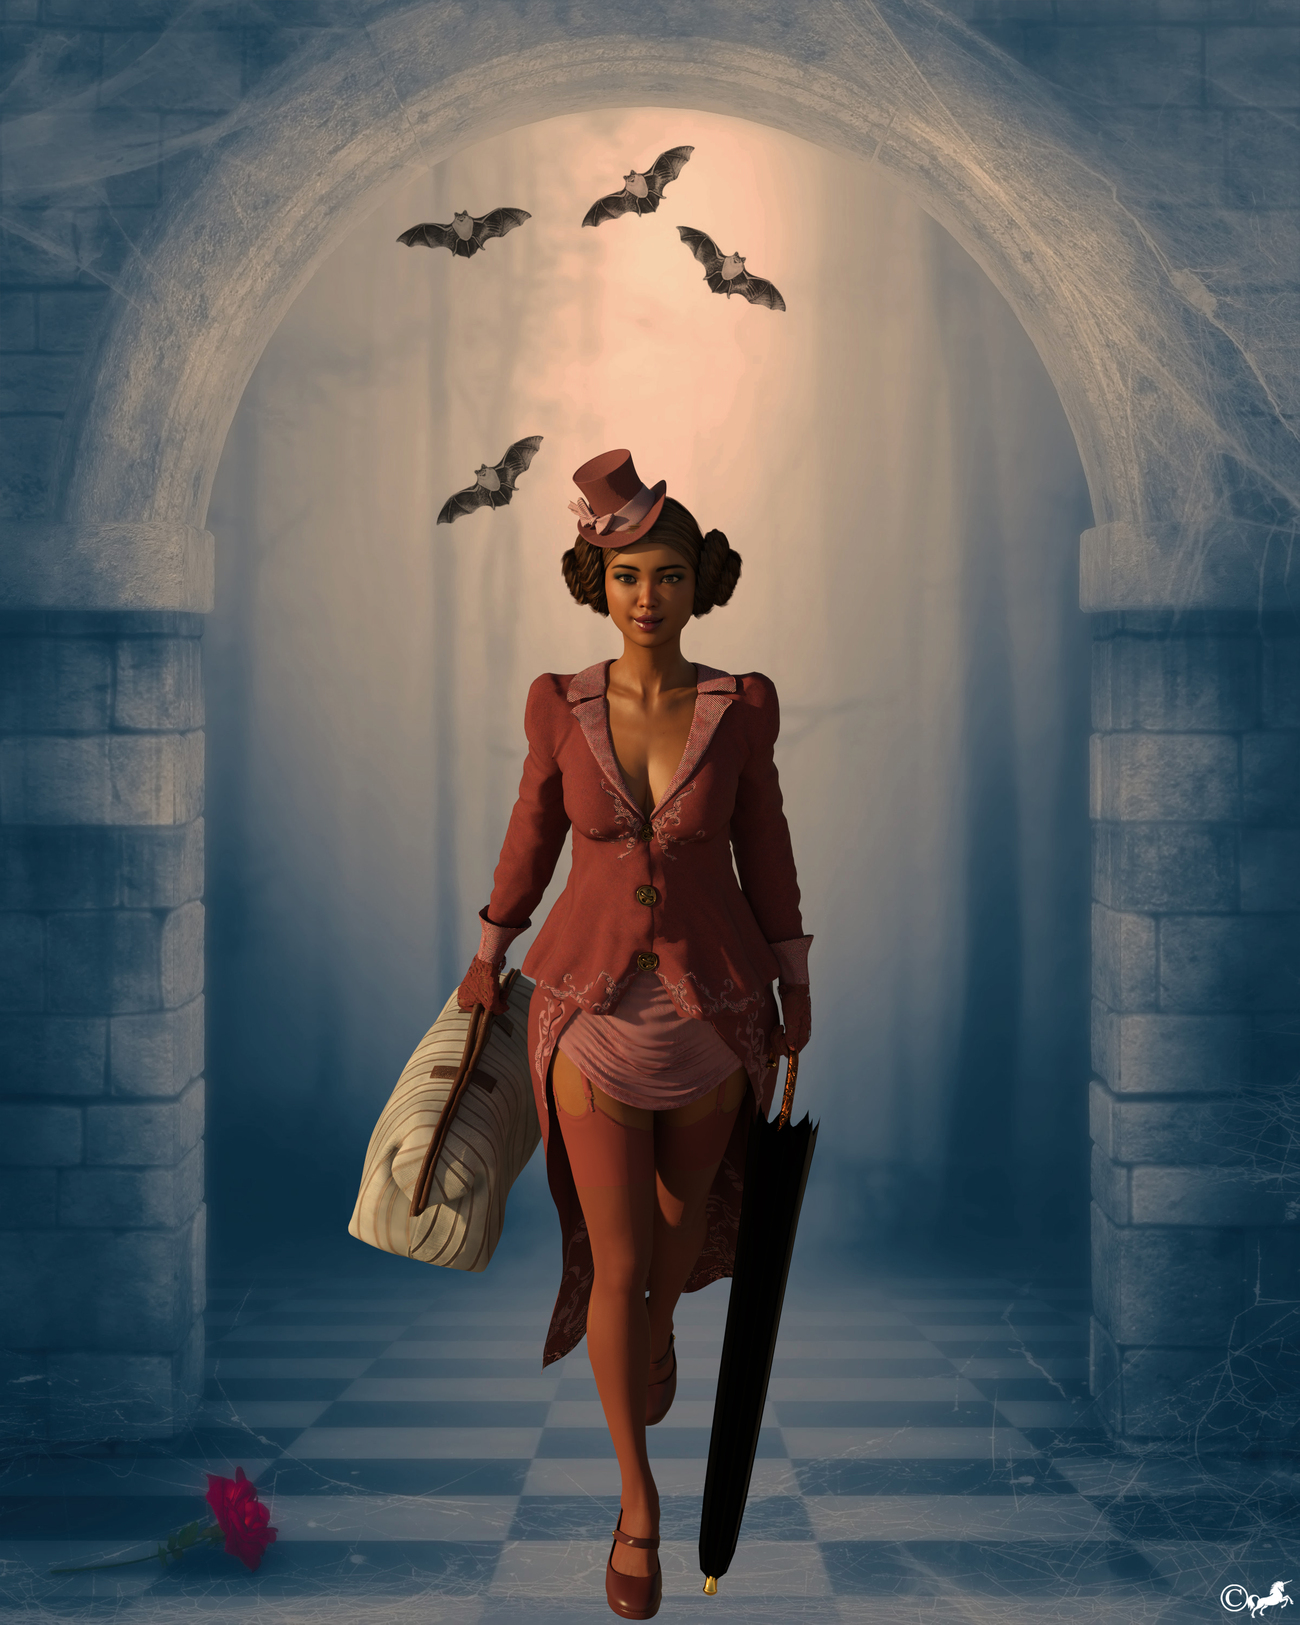 DAZ 1191b or Dorothe Poppins by miwi